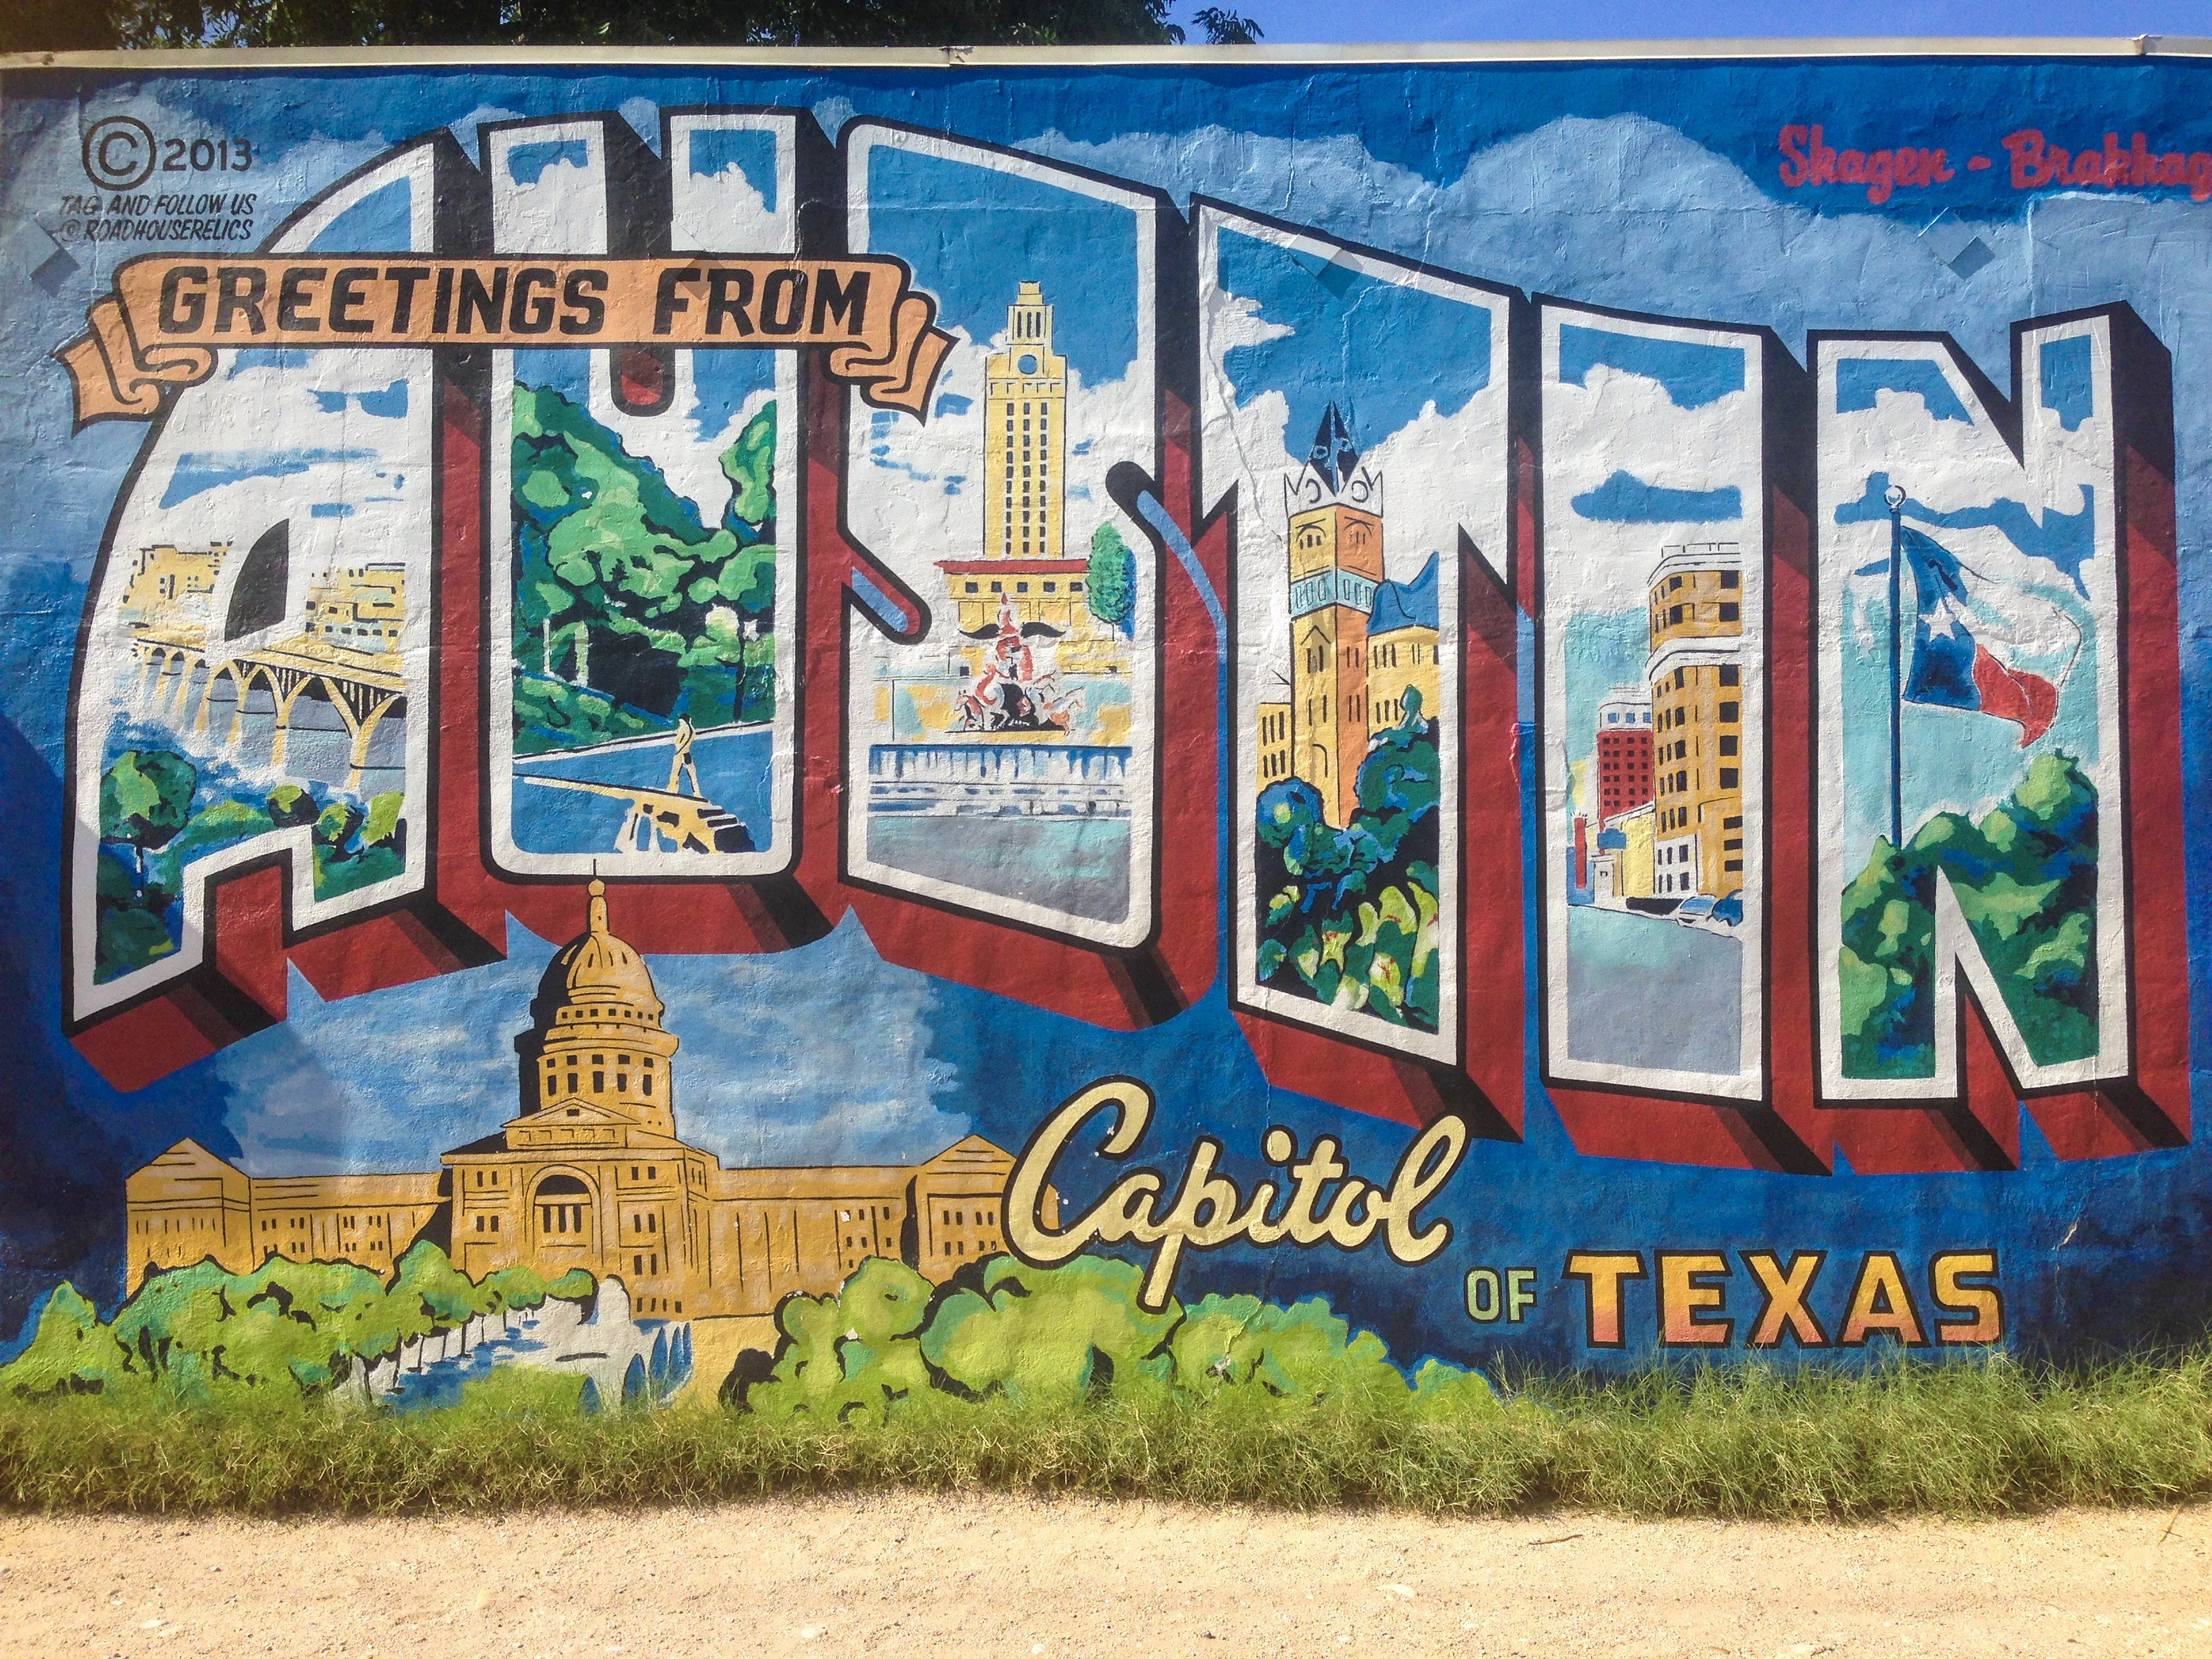 Austin Texas USA travel guide things to do city guide travel tips